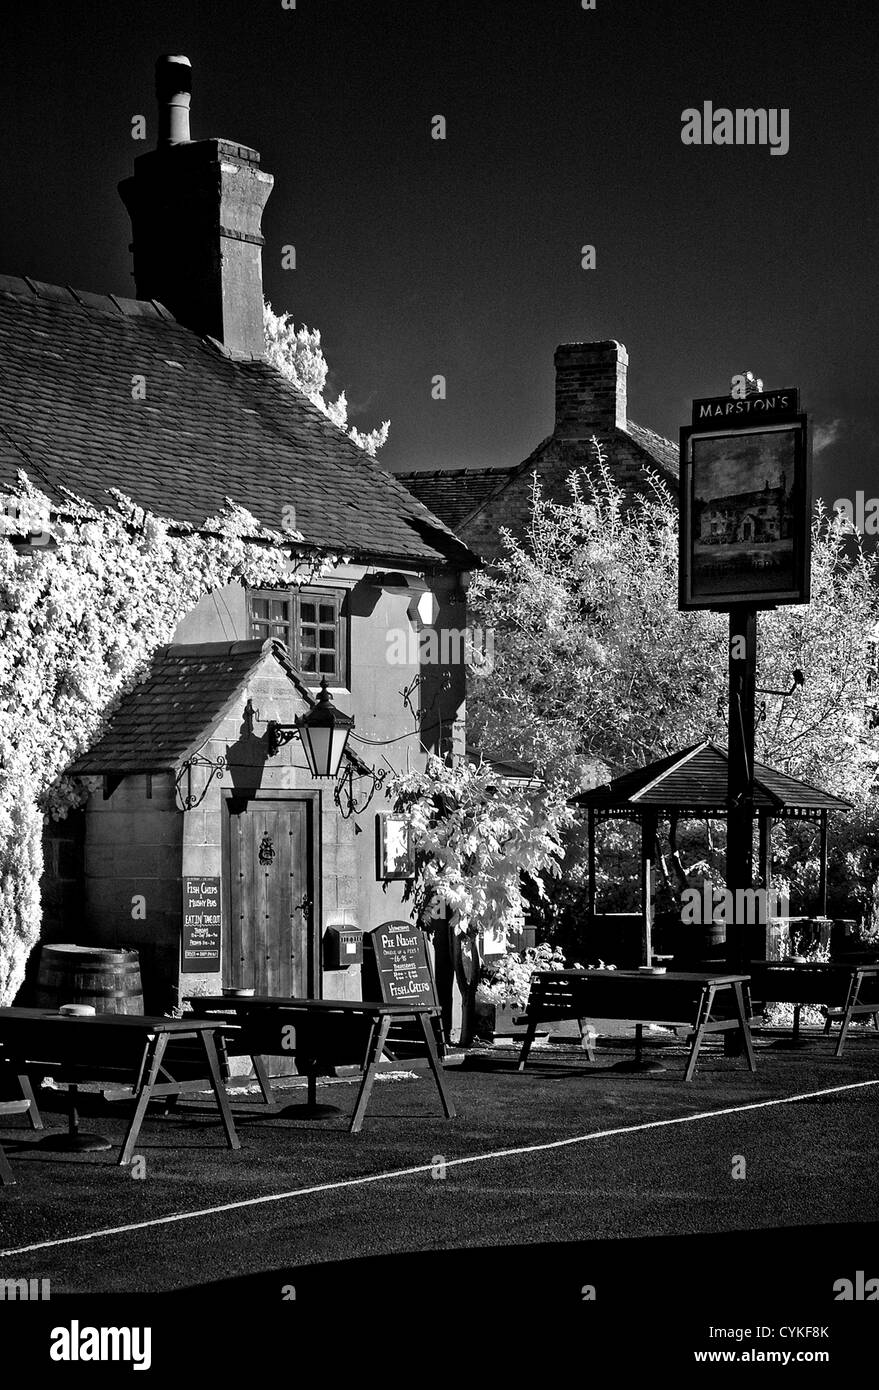 The Tavern Denstone in infrared monochrome - Stock Image